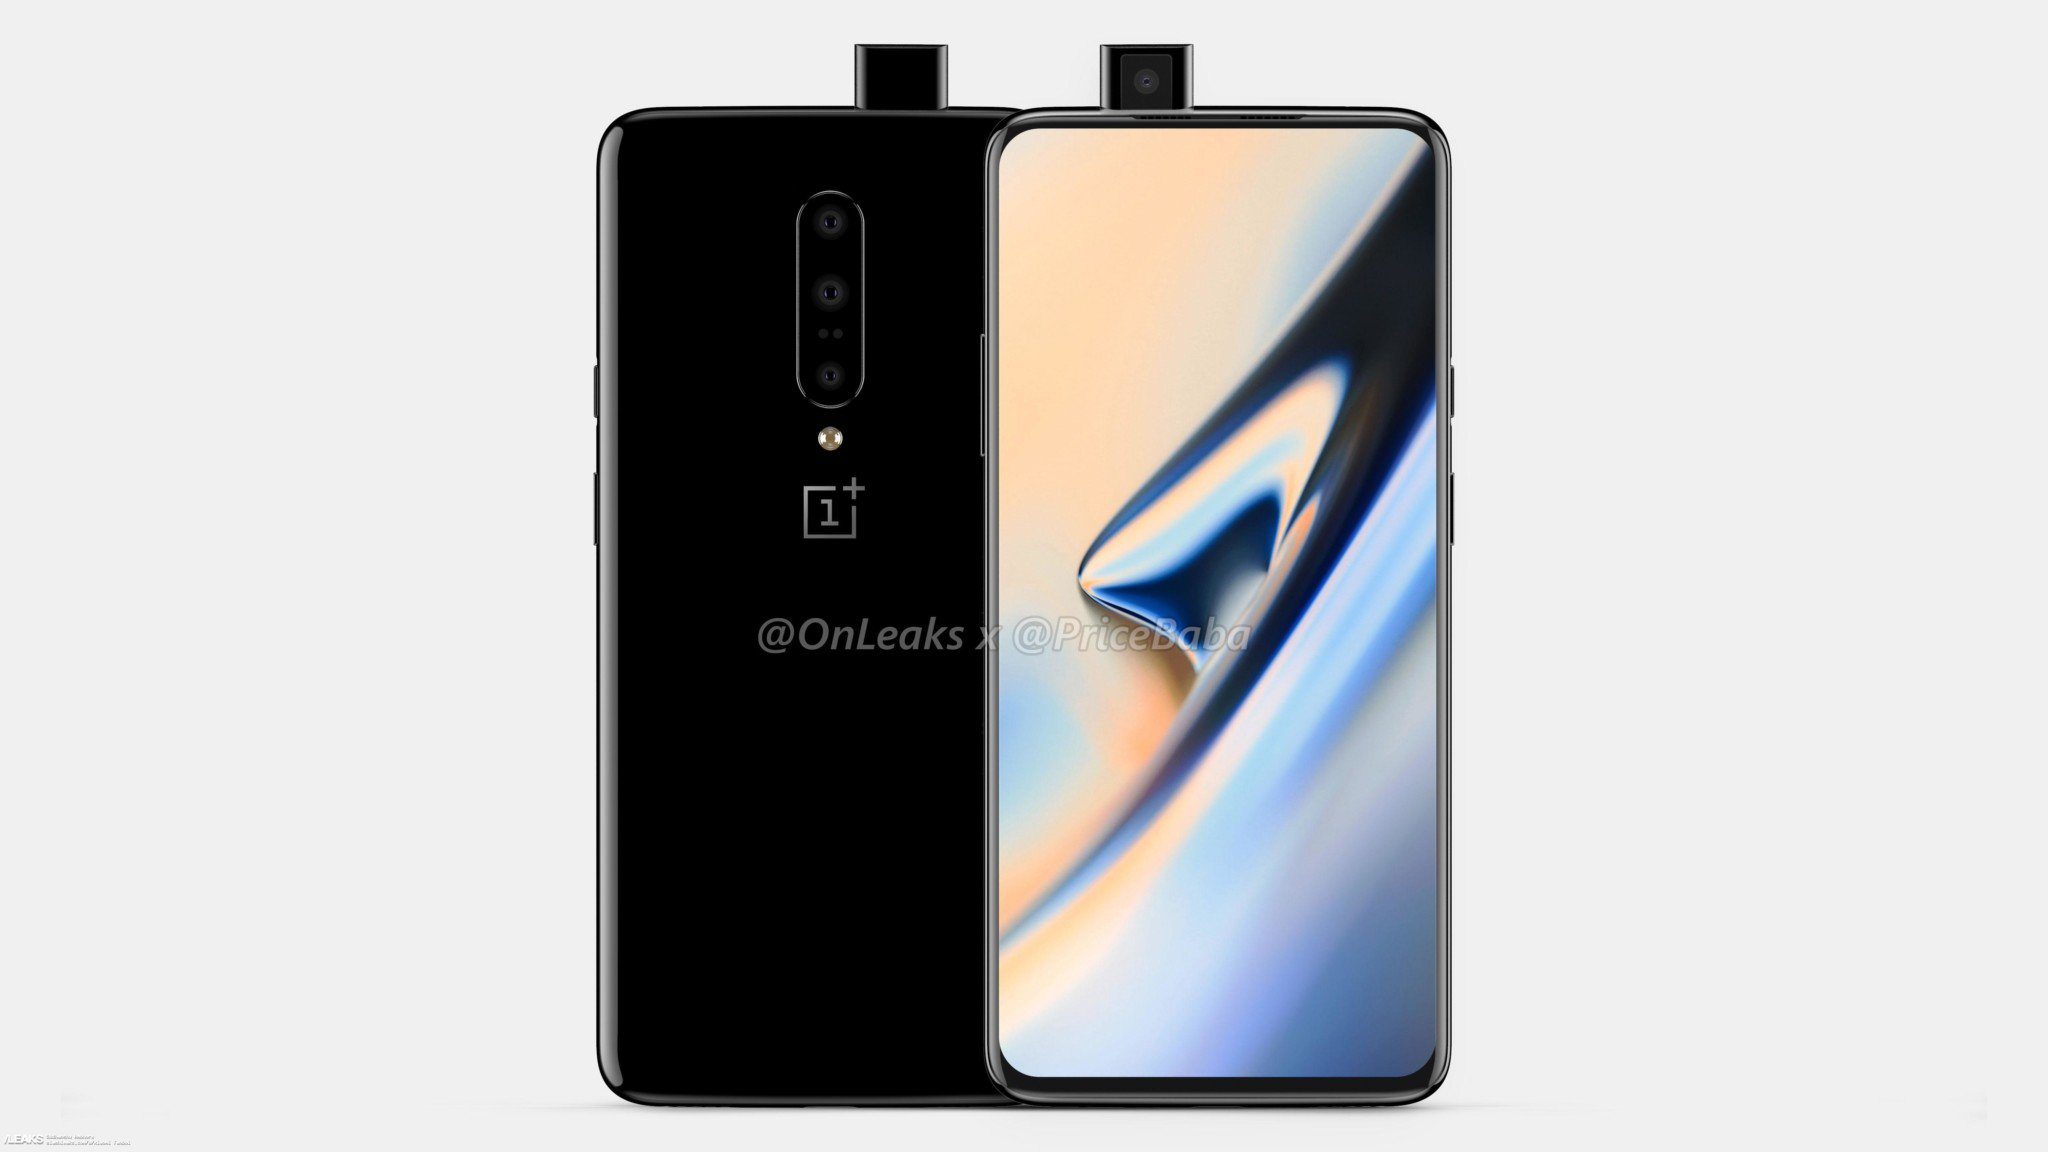 Oneplus 7 Hands-on Leaked Picture Shows Pop-up Front Digital Camera And A Notch-less Screen